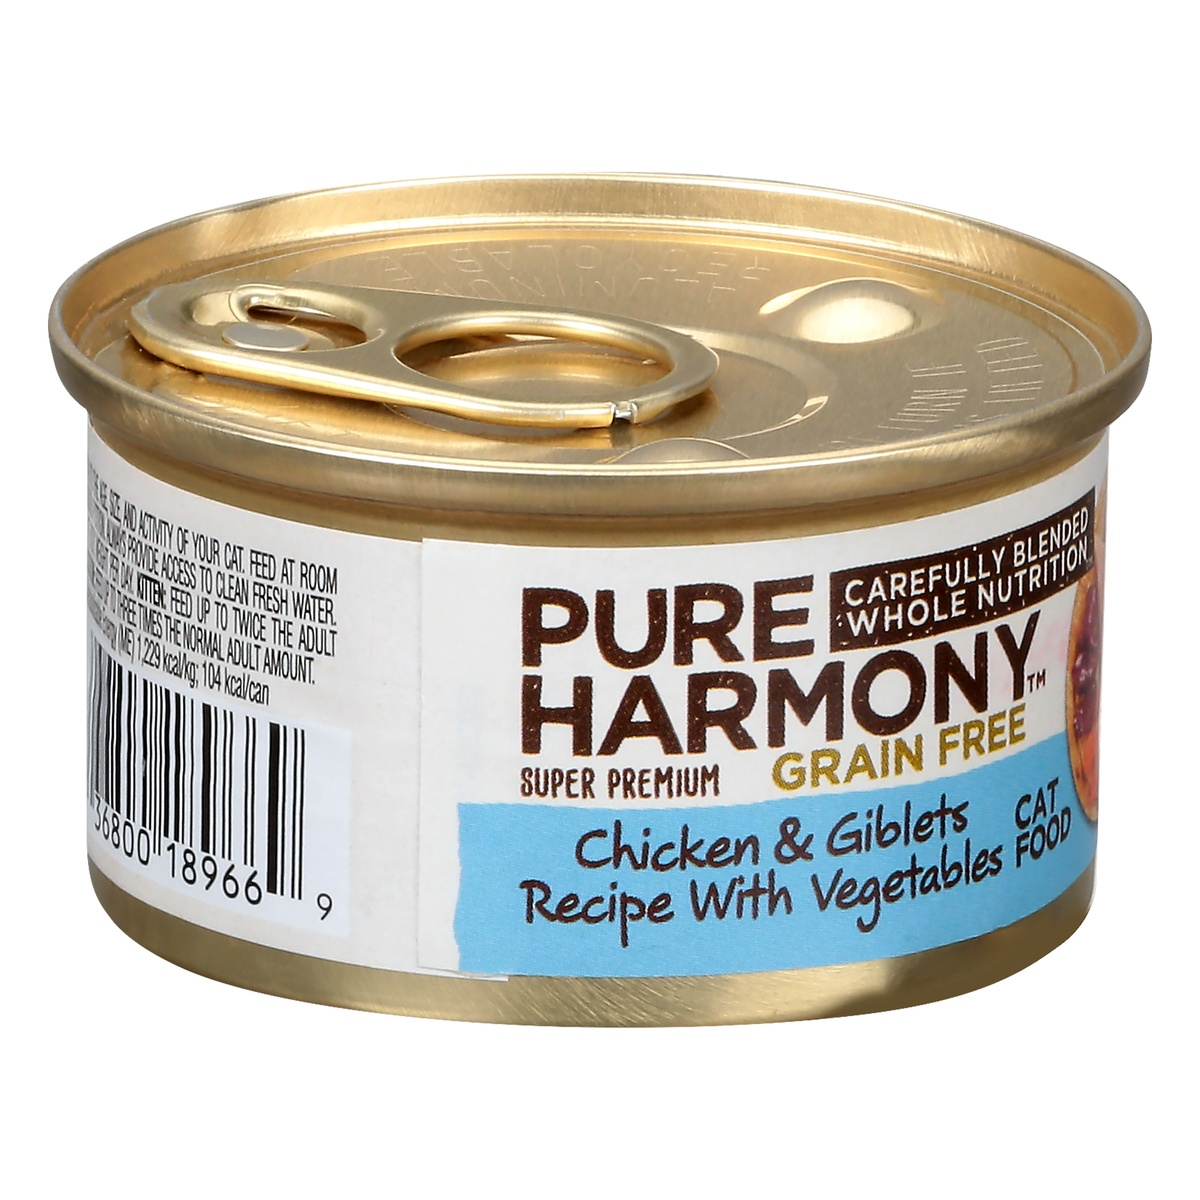 slide 2 of 9, Pure Harmony Super Premium Grain Free Pate Cat Food Chicken Giblets with Vegetables,